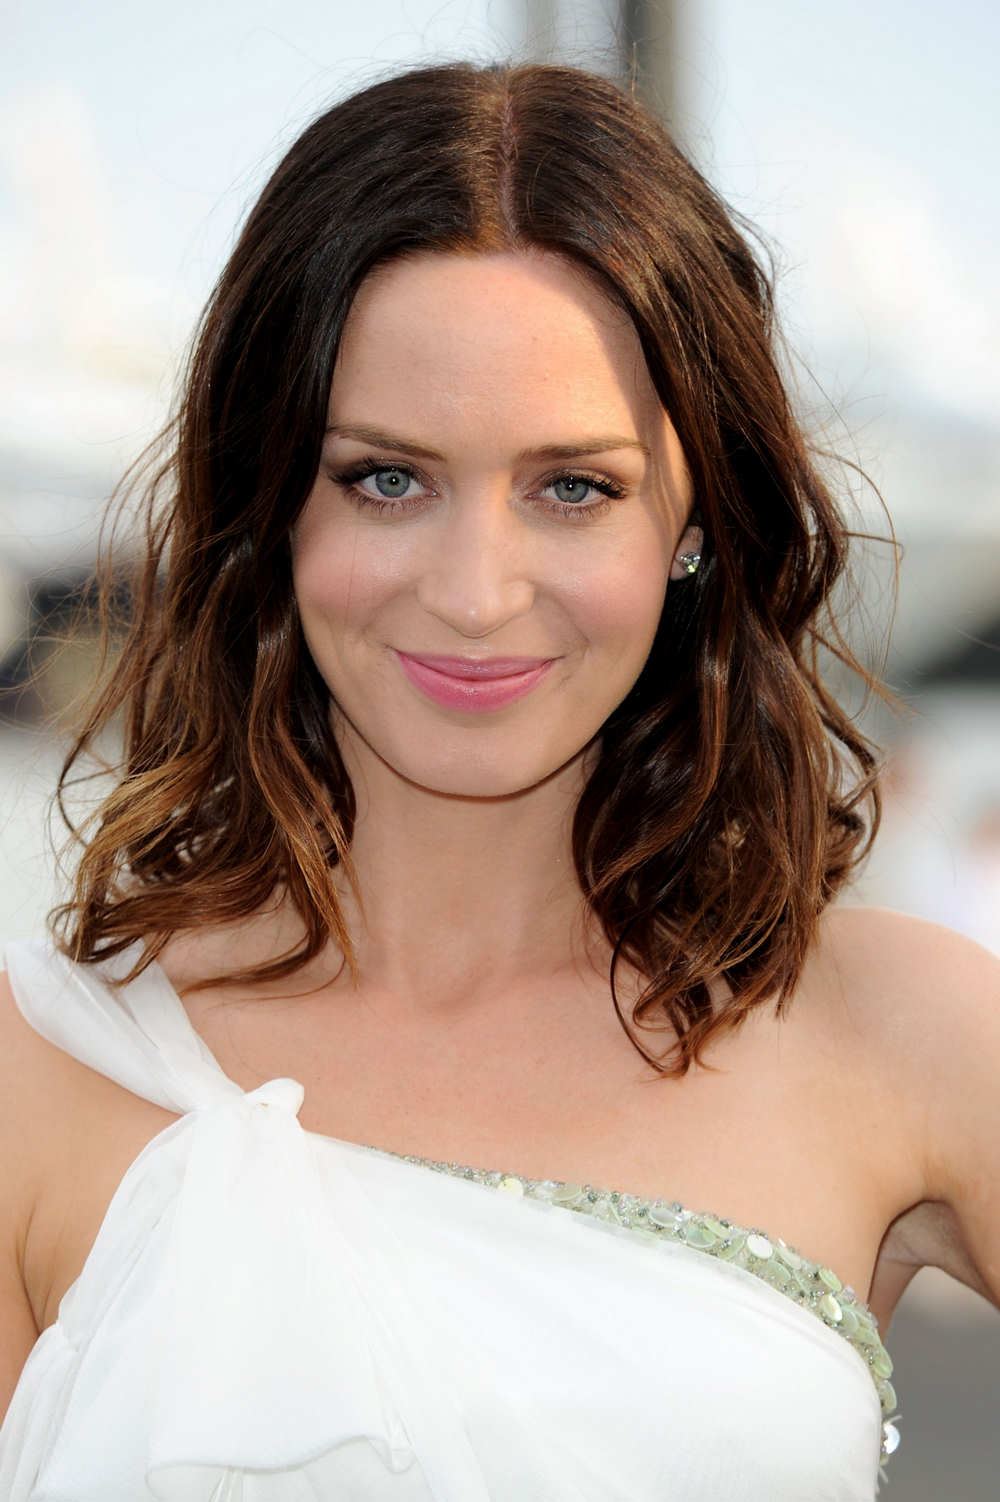 Emily Blunt Hot New Full HD Images, Wallpapers & Photos